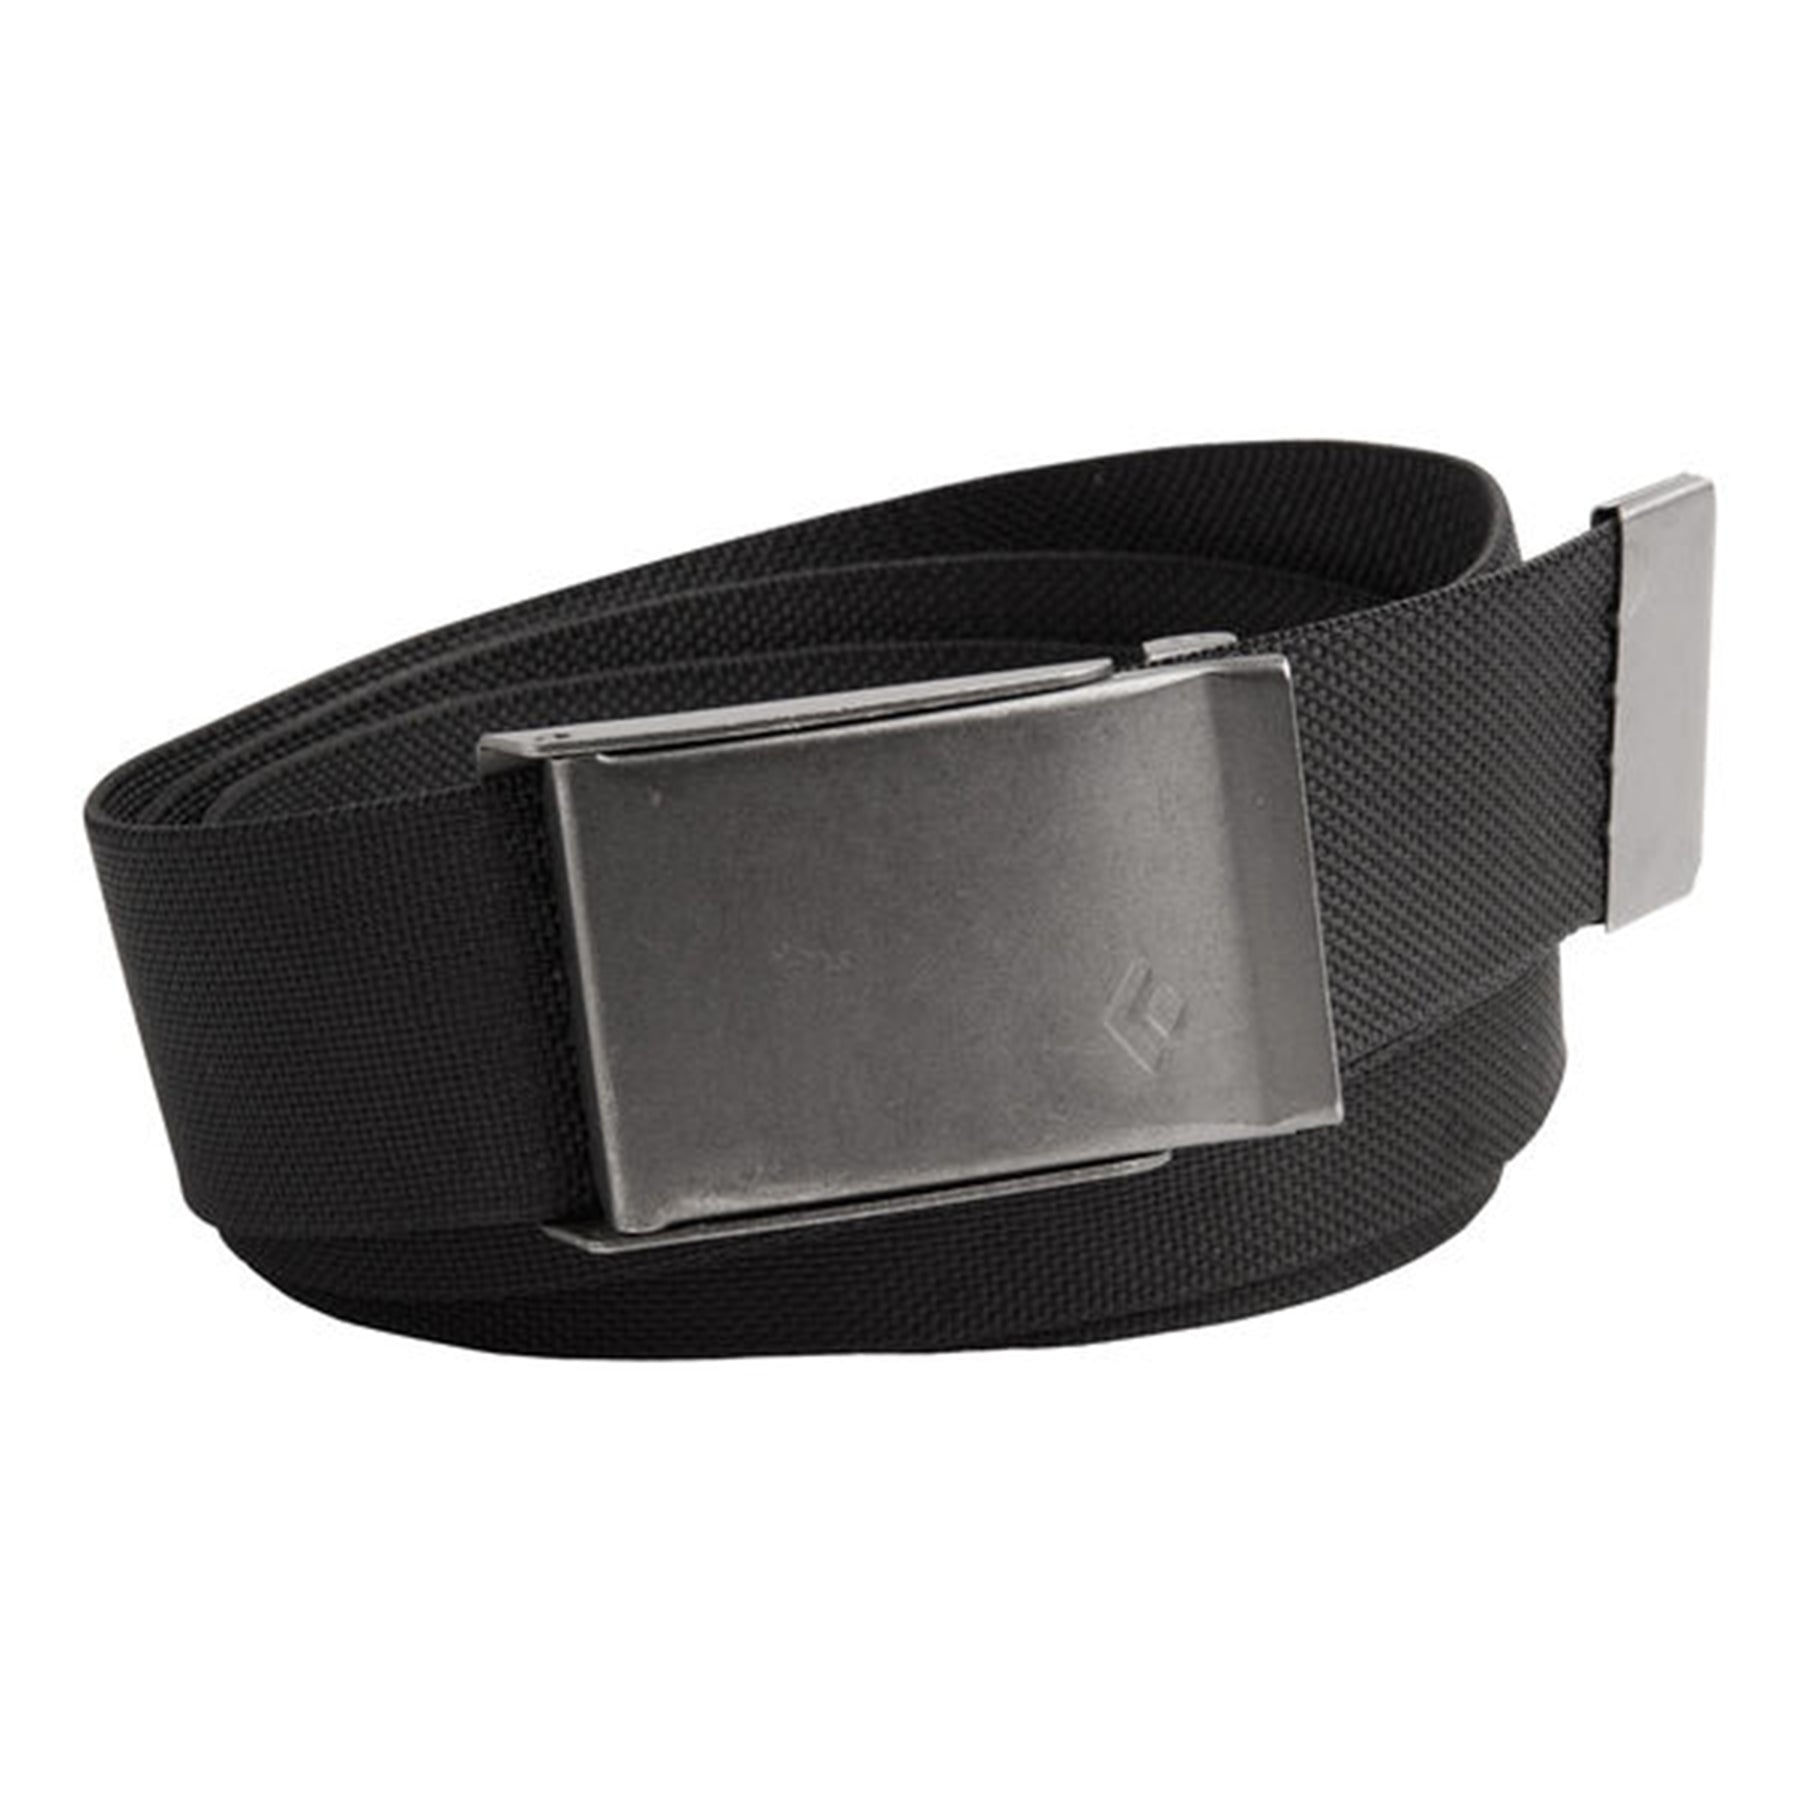 a black webbing belt with a metal buckle